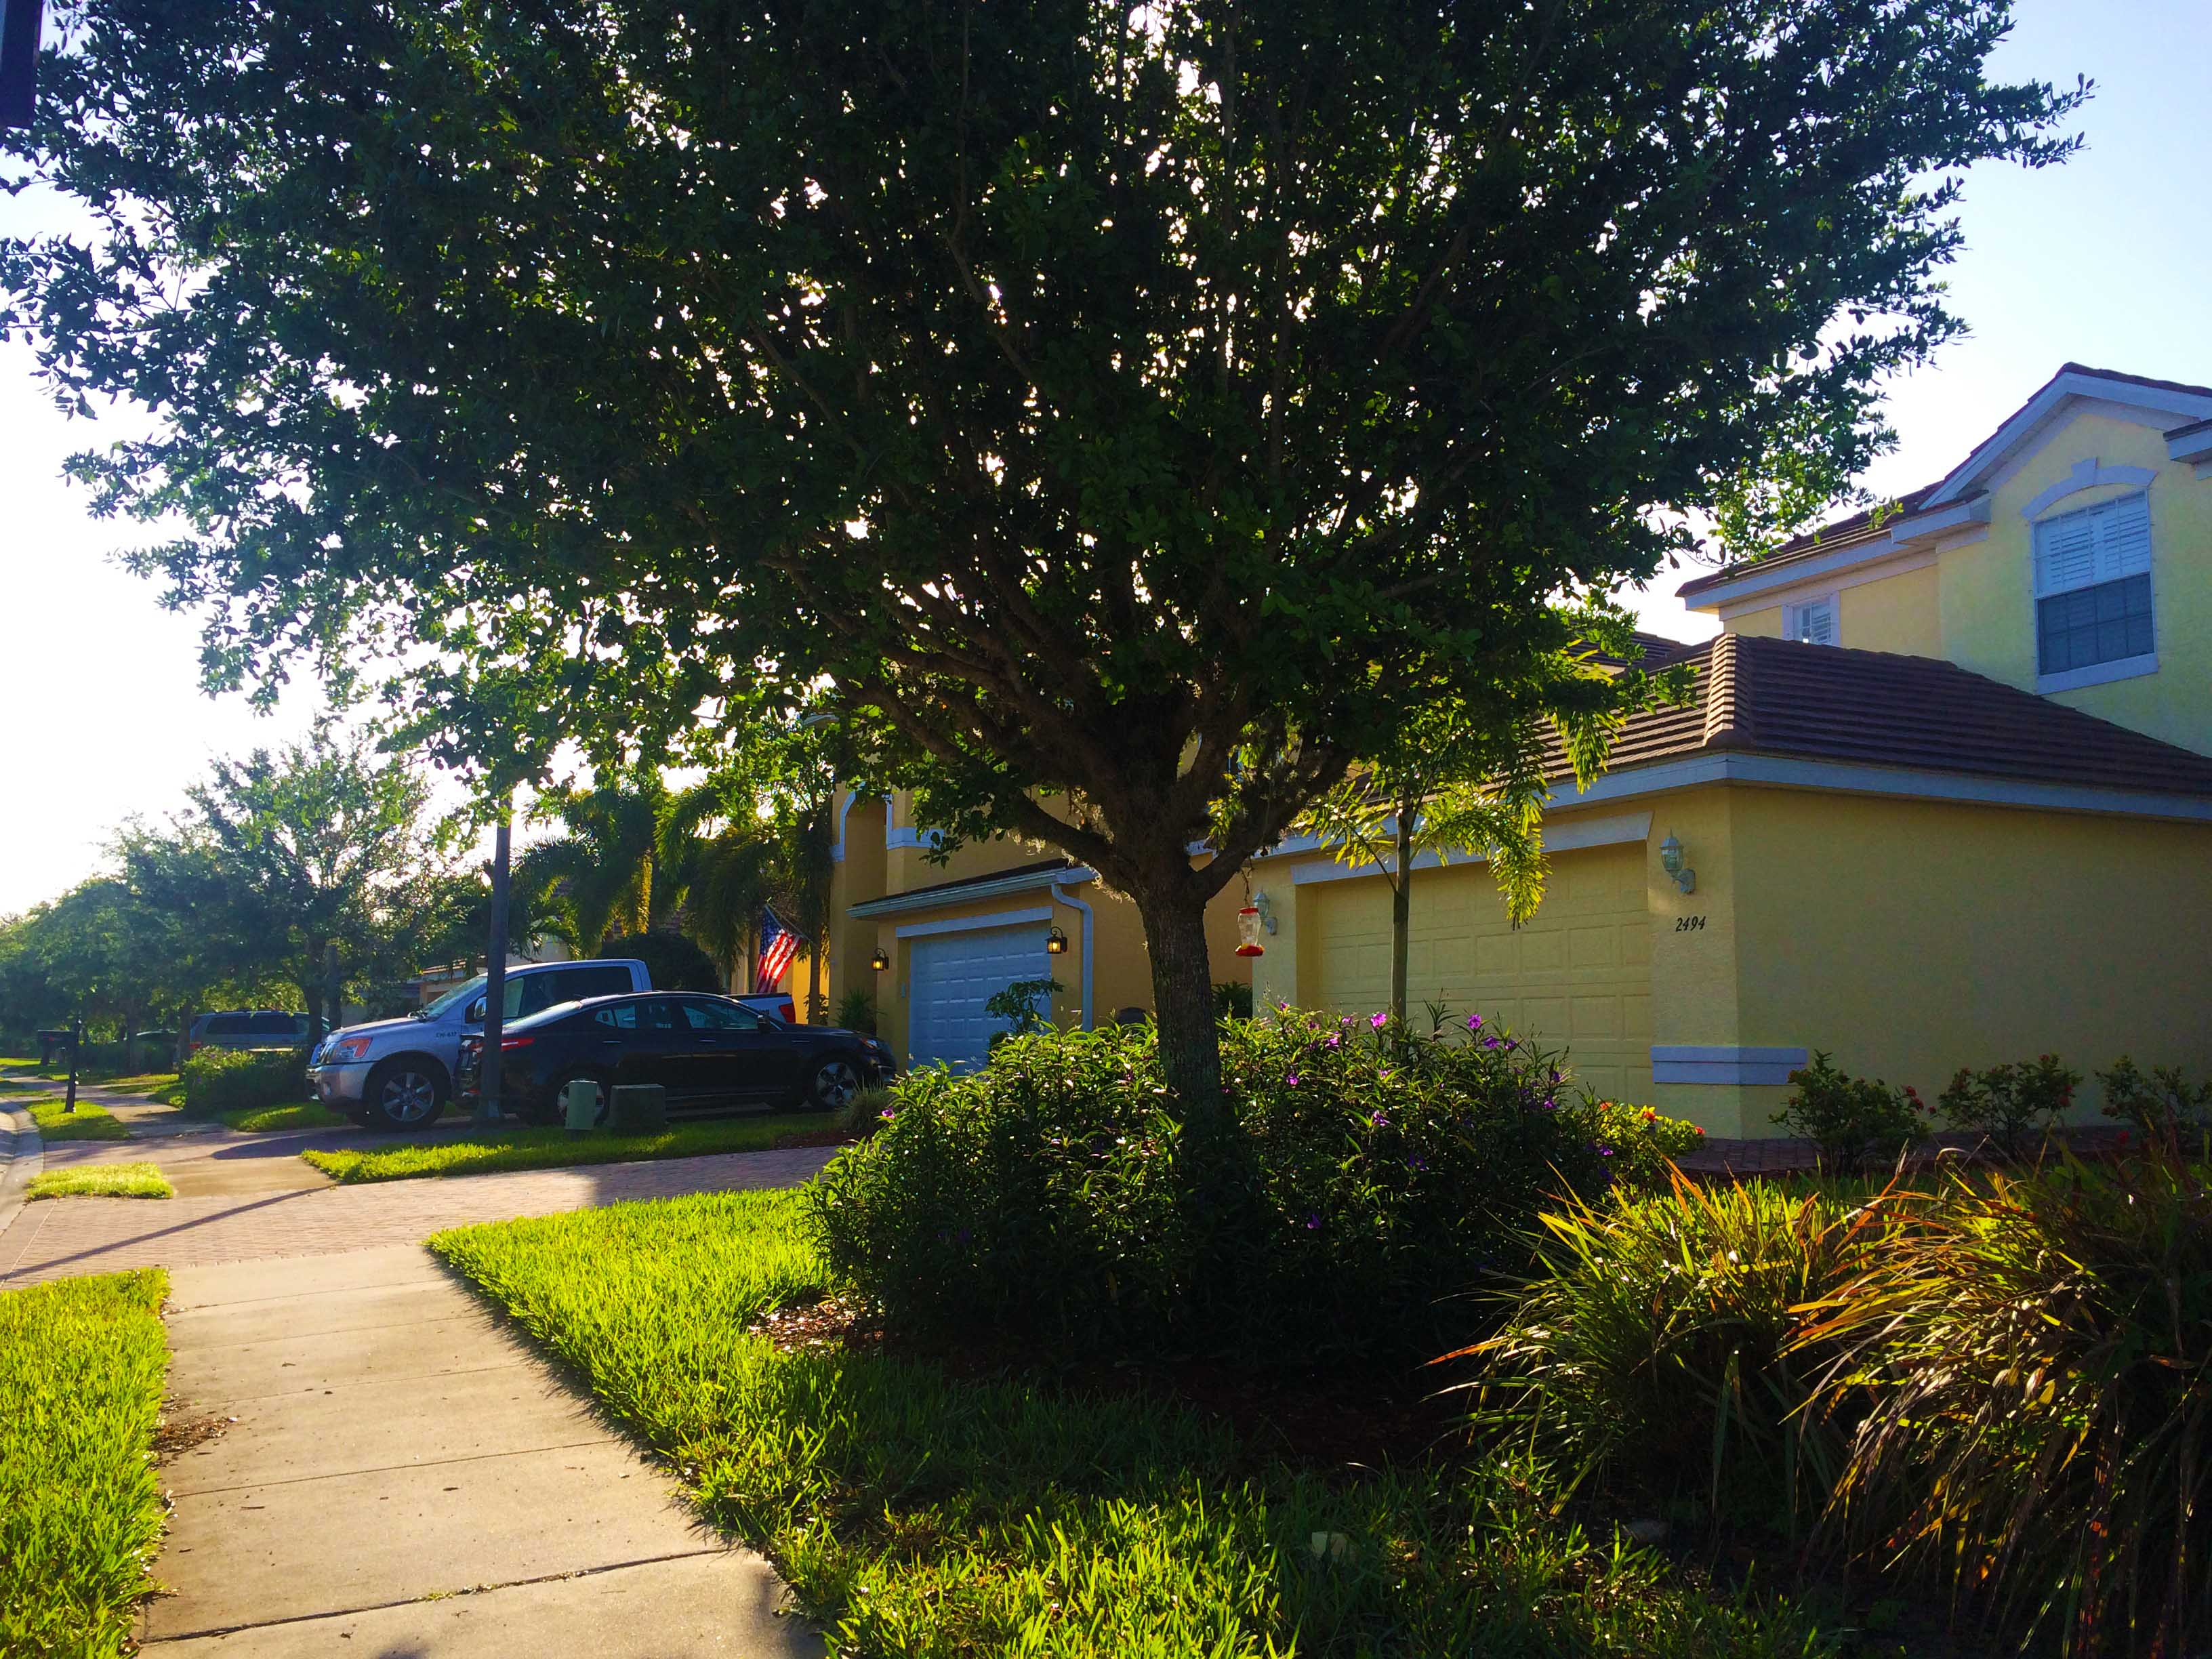 cape-coral-real-estate-sandoval-town-home.jpg